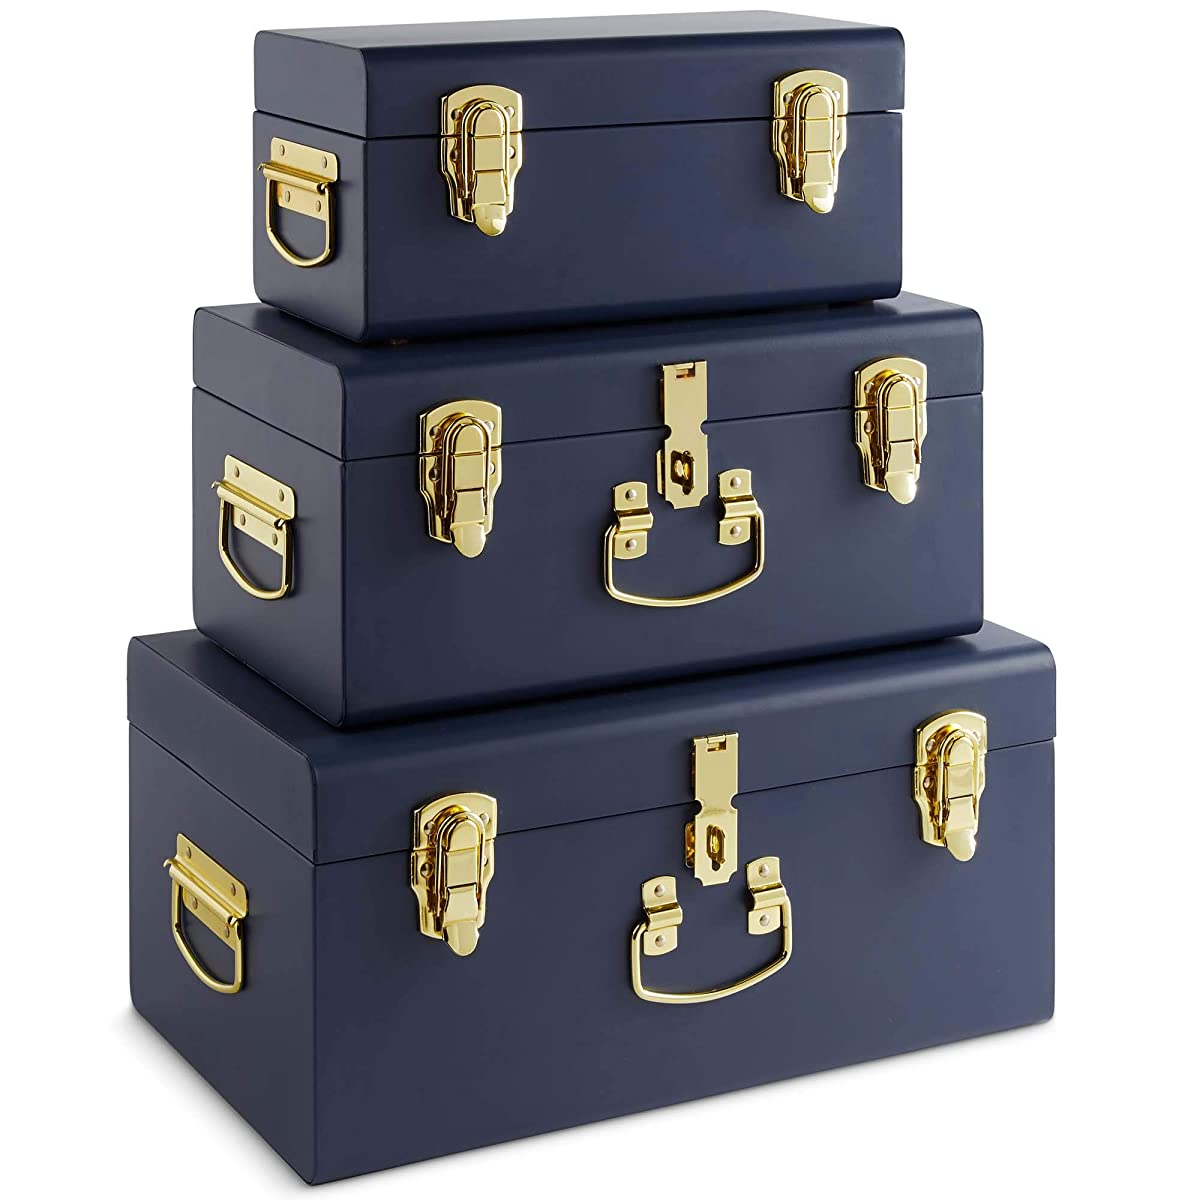 Beautify Set of 3 Navy Blue Vintage Metal Steel Storage Trunk Set Lockable and Decorative with Brass Handles - Bedroom Footlocker, College Dorm or Living Room Trunks